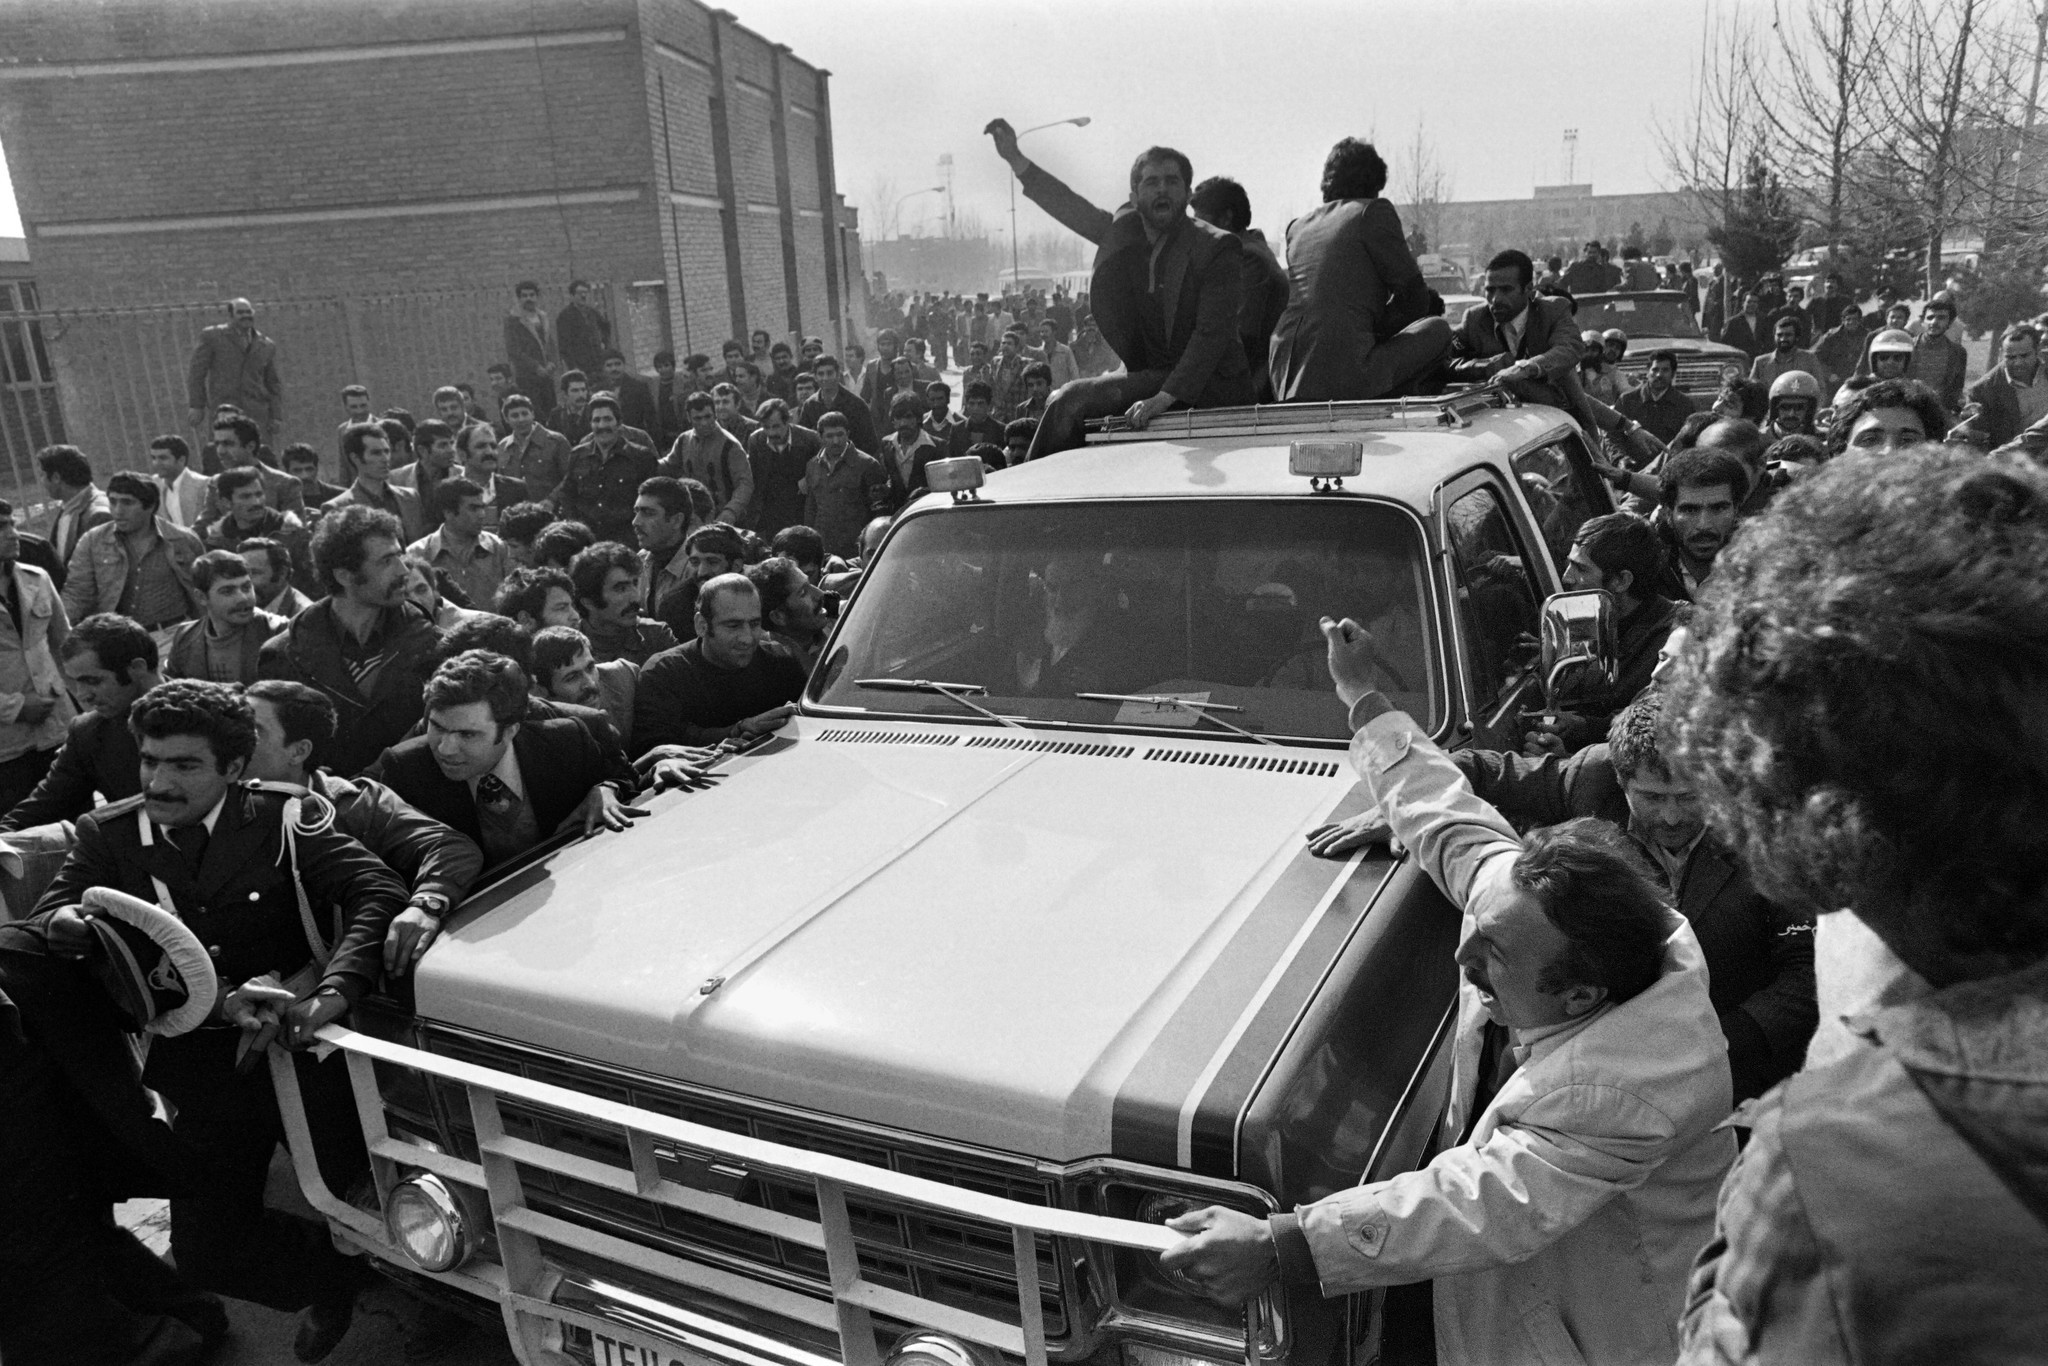 Khomeini's return